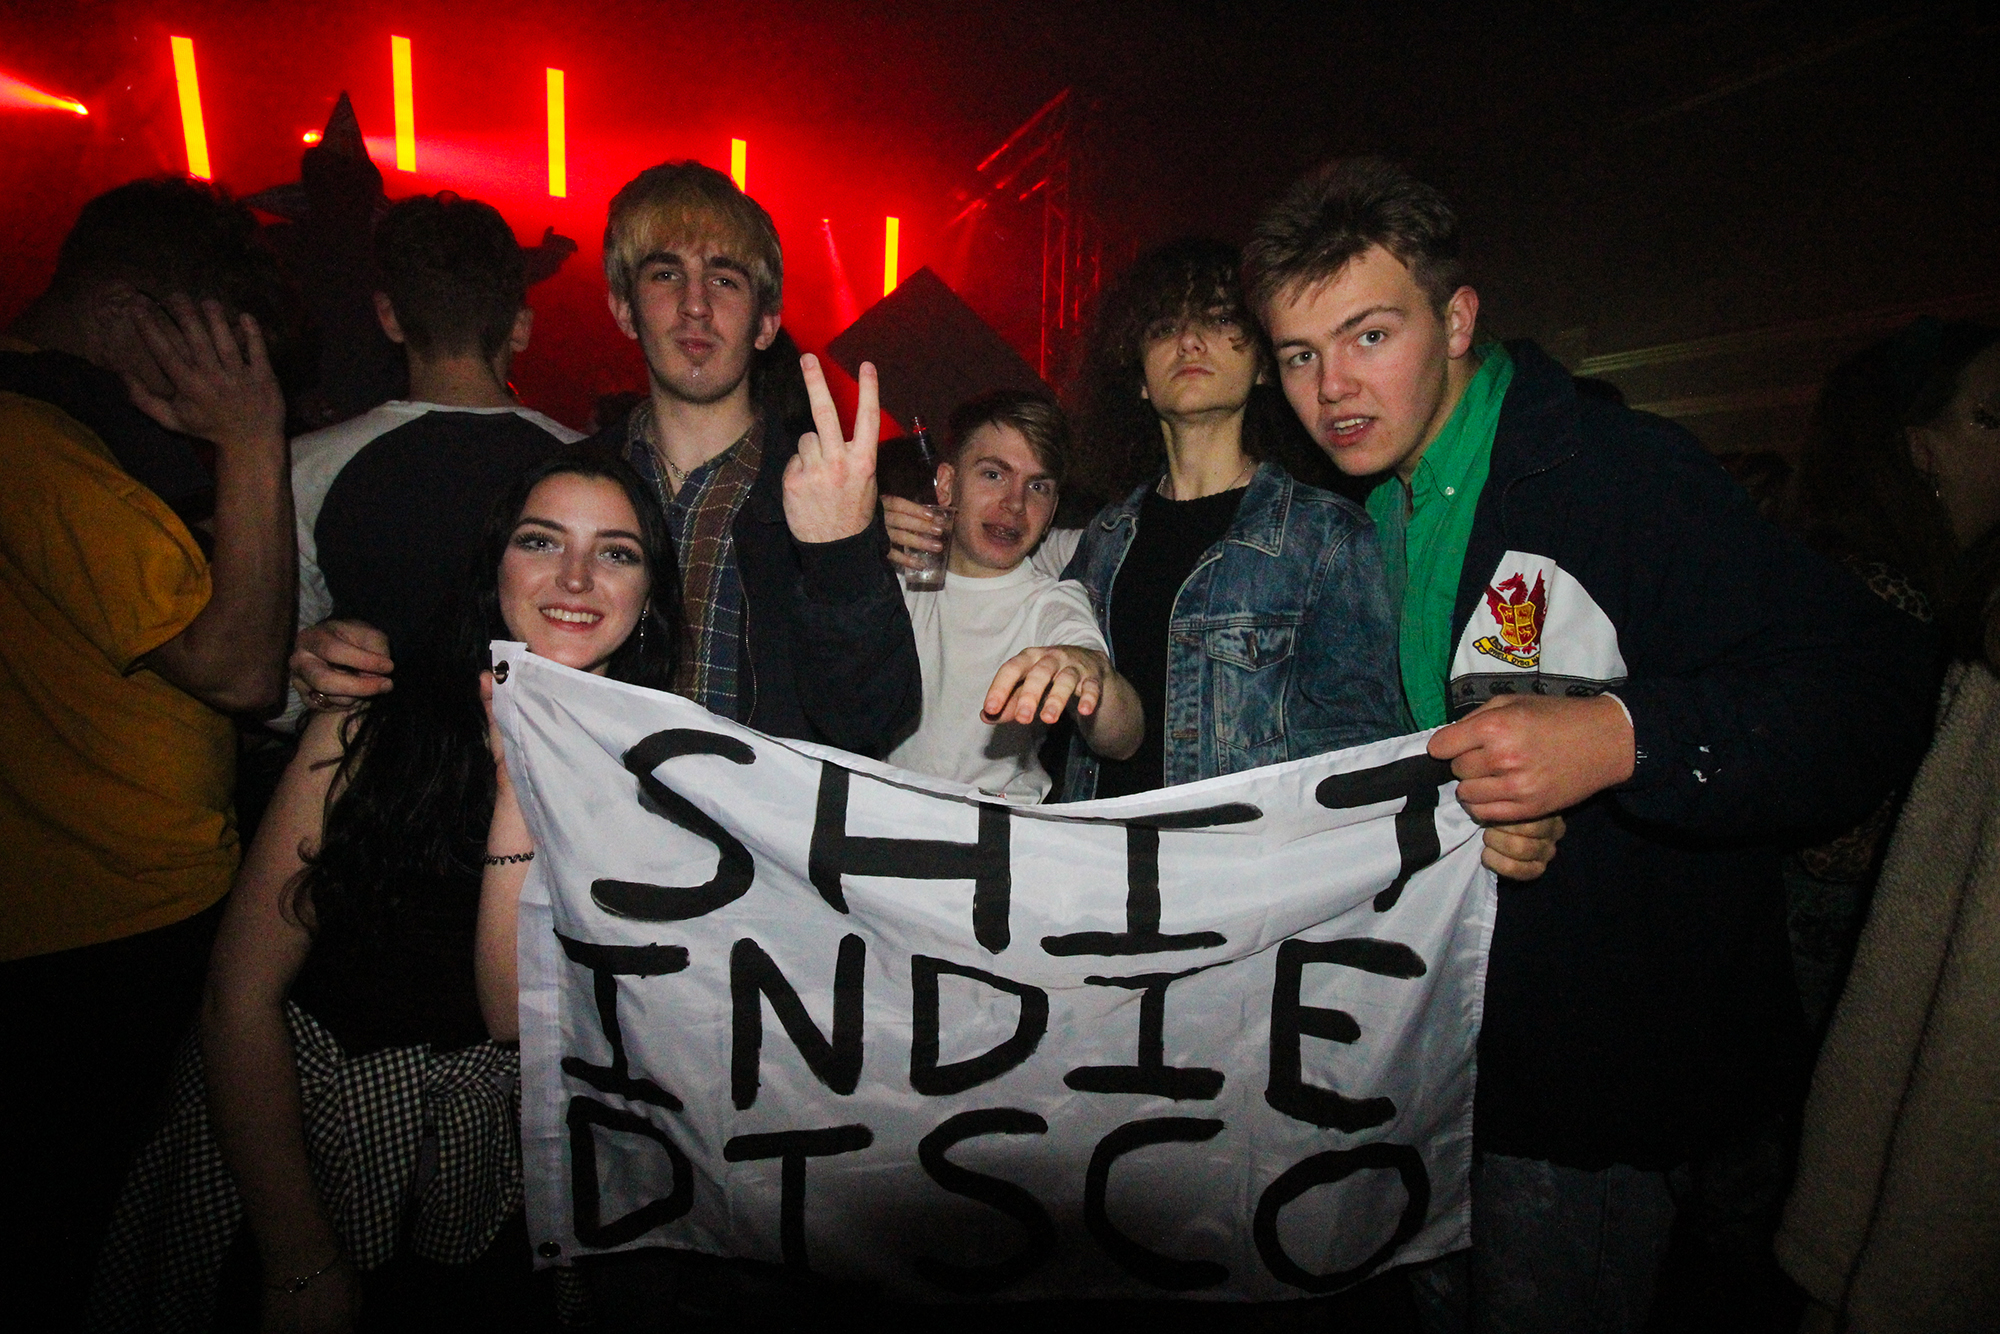 Shit Indie finals8.jpg